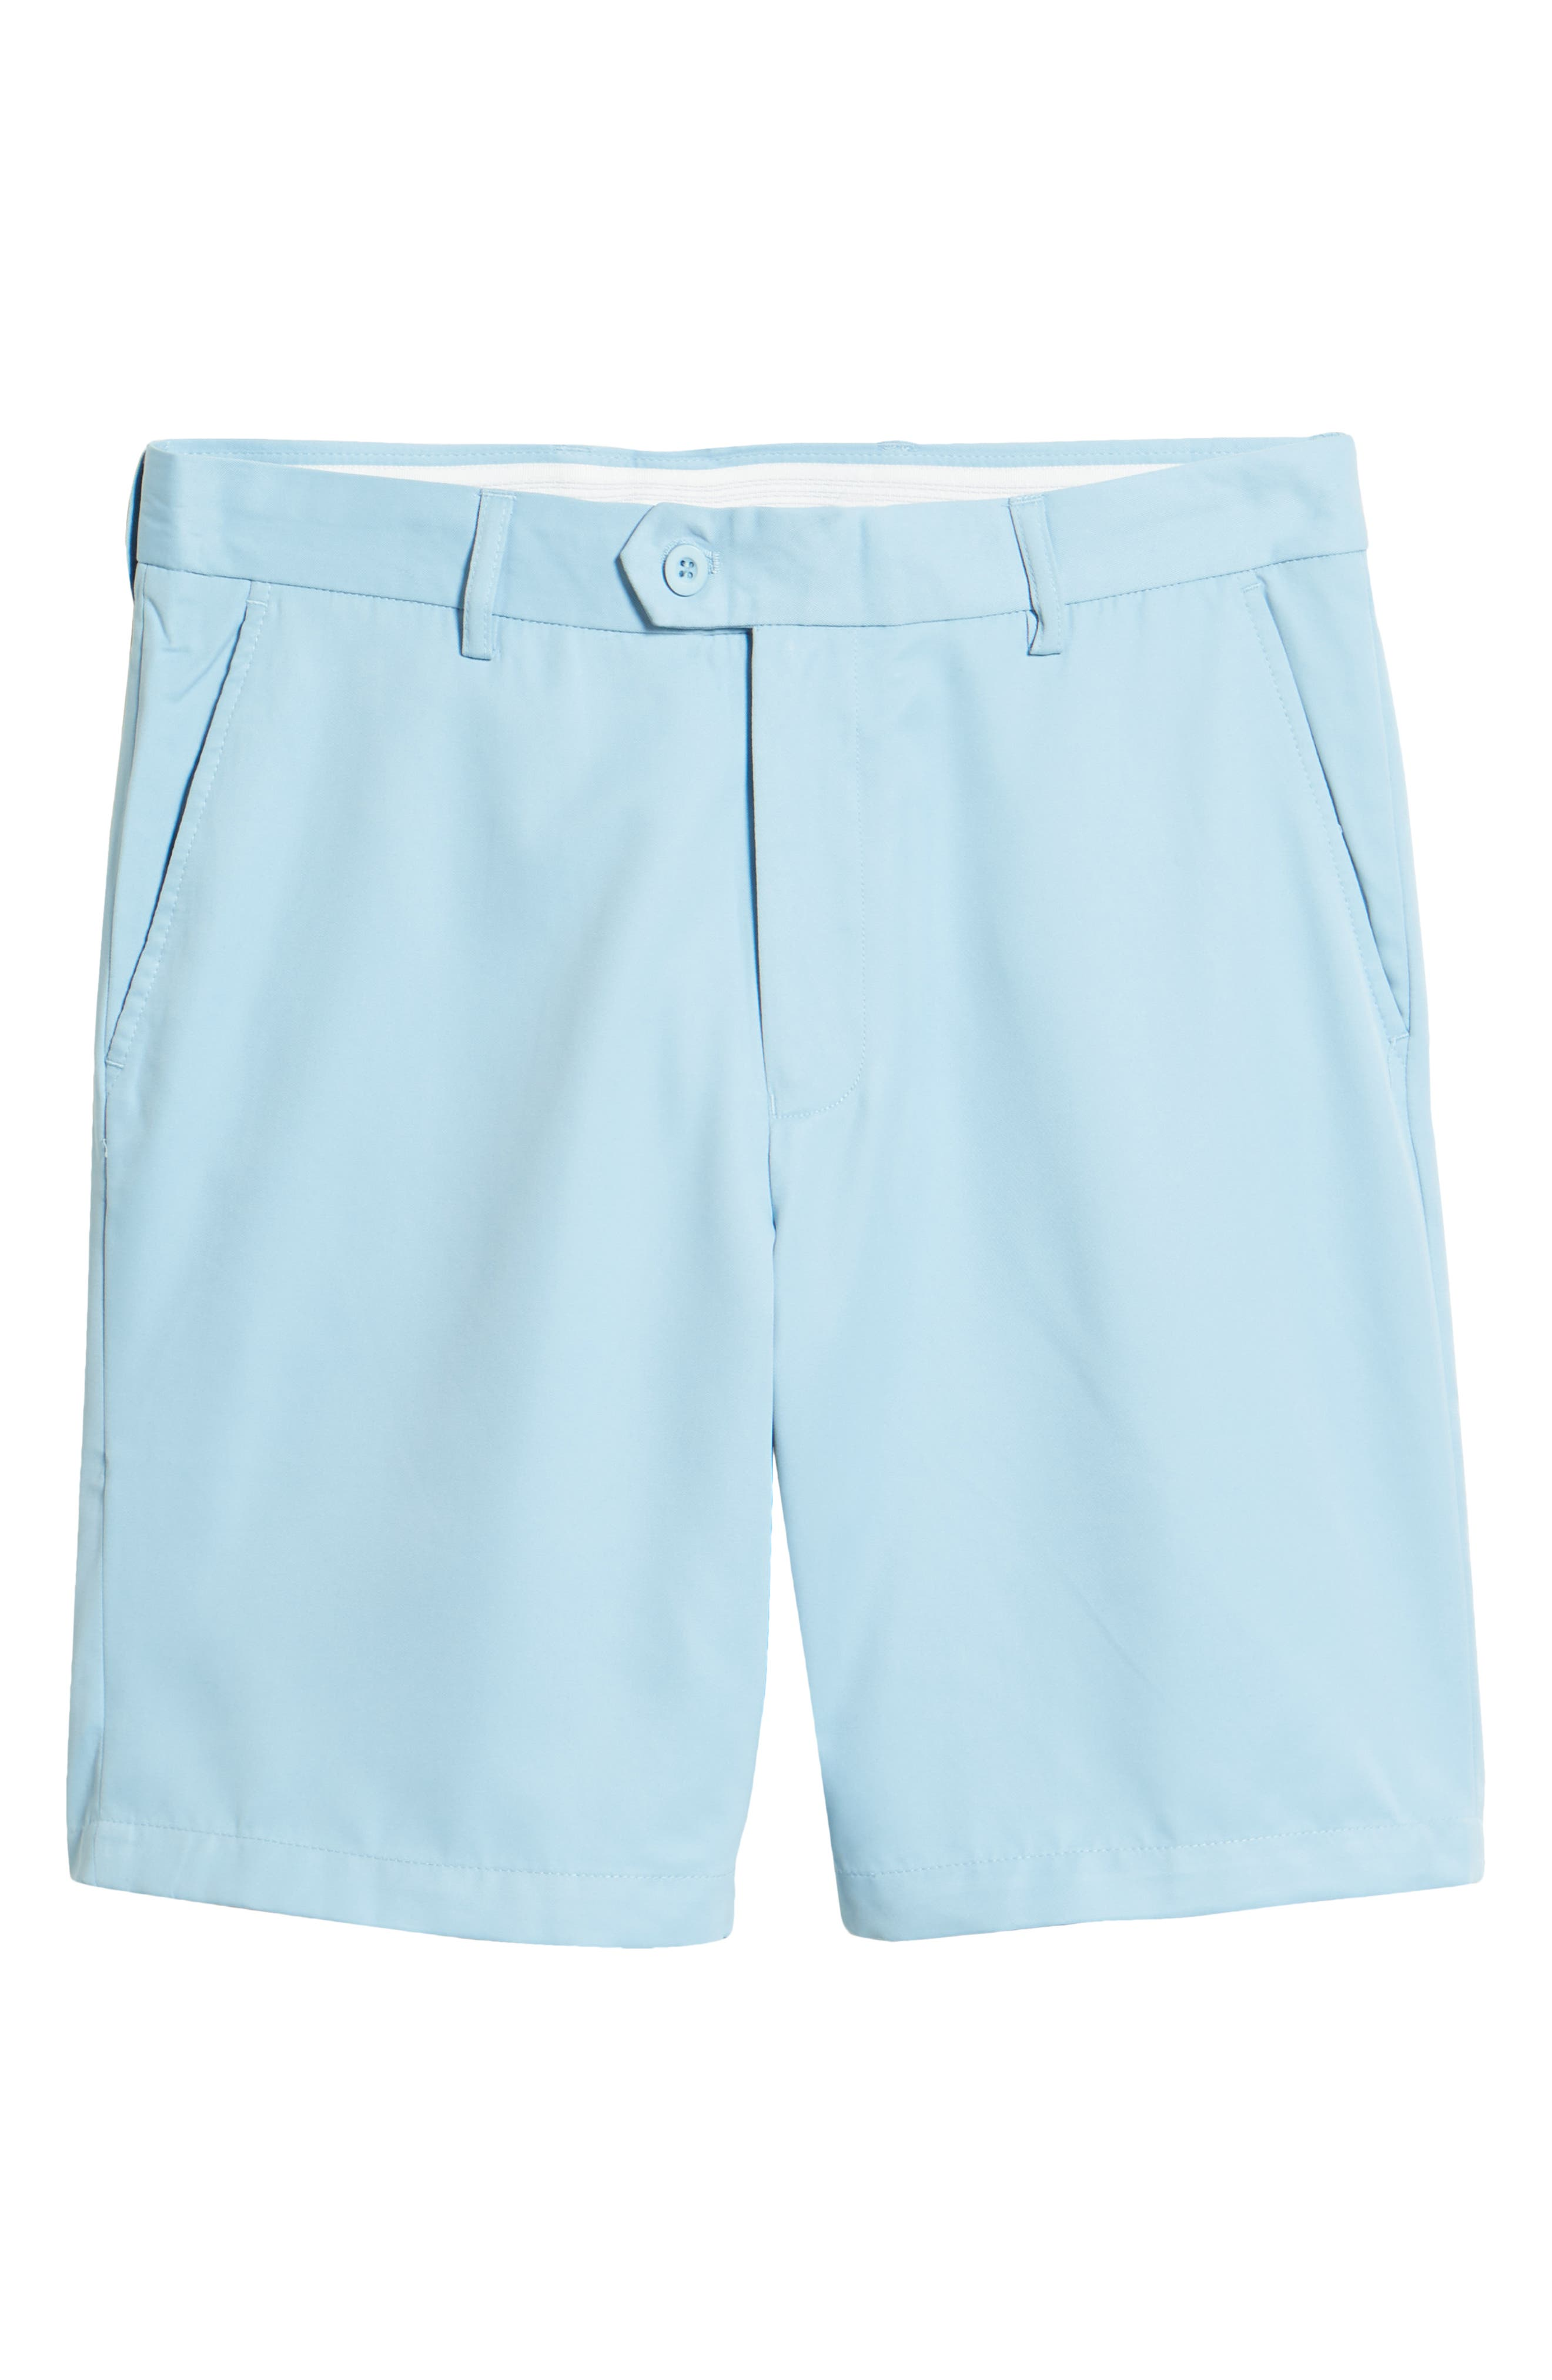 Vintage Style Mens Shorts Mens Big  Tall Bugatchi Classic Fit Bermuda Shorts Size 44 - Blue $98.00 AT vintagedancer.com